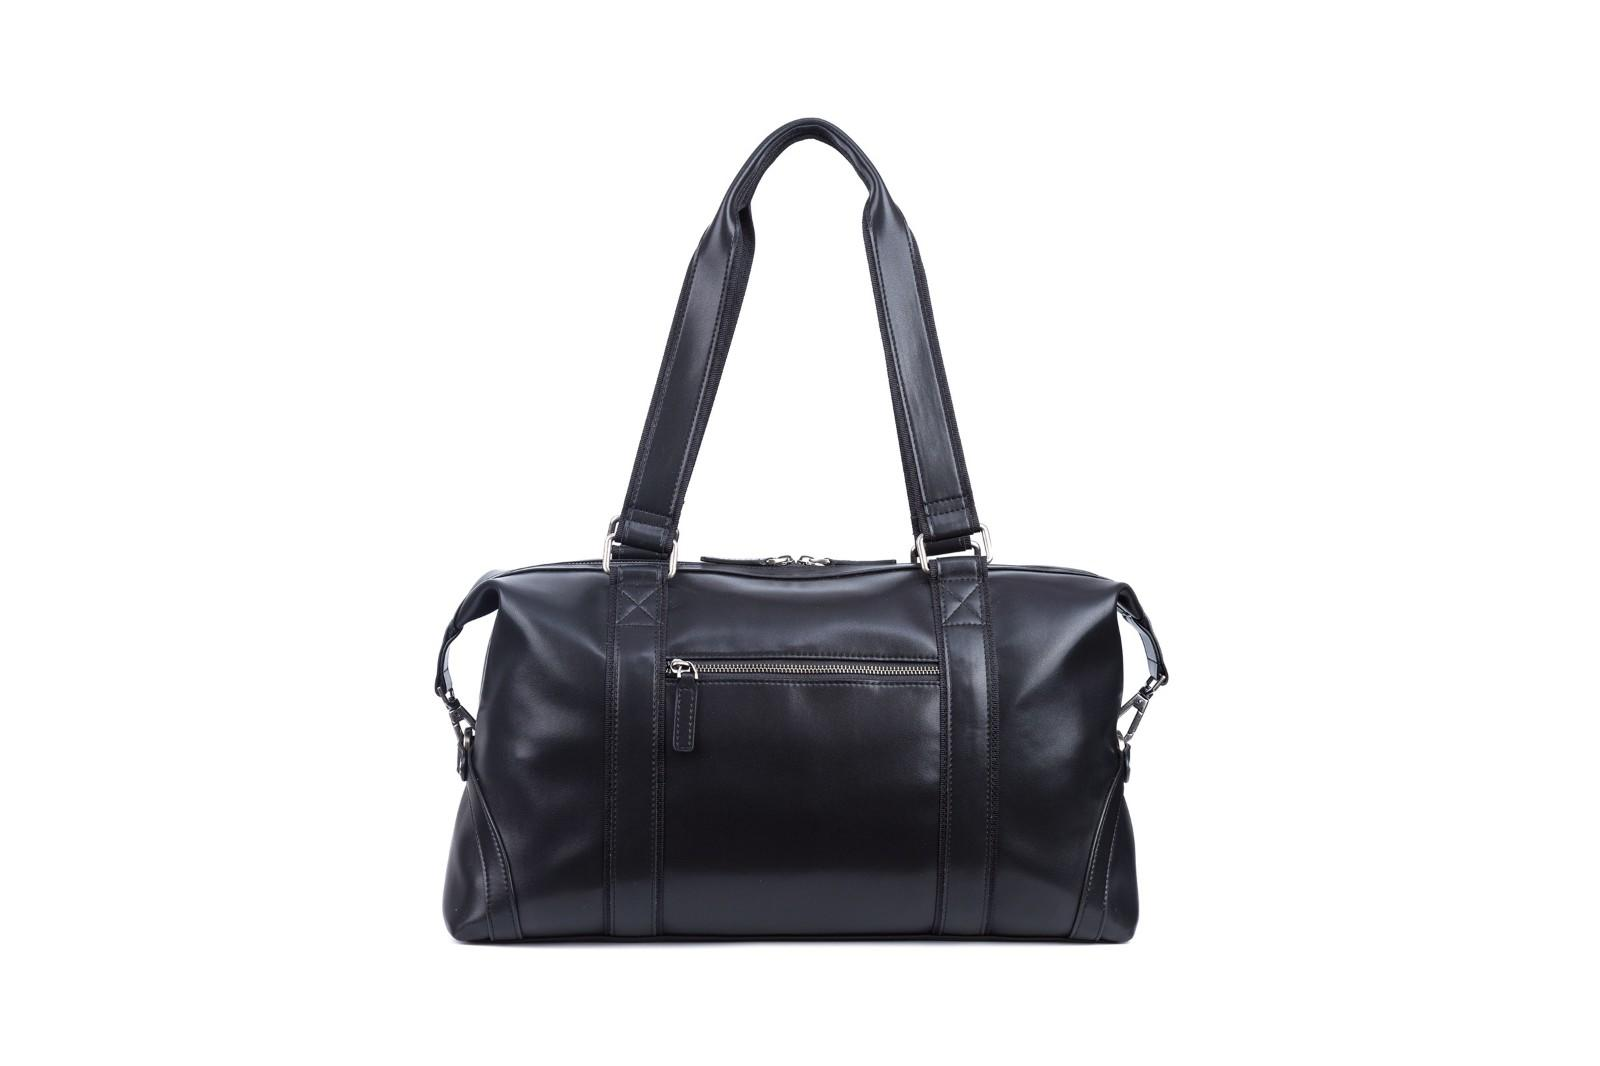 weekend duffle bag mens leather for boy GF bags-1